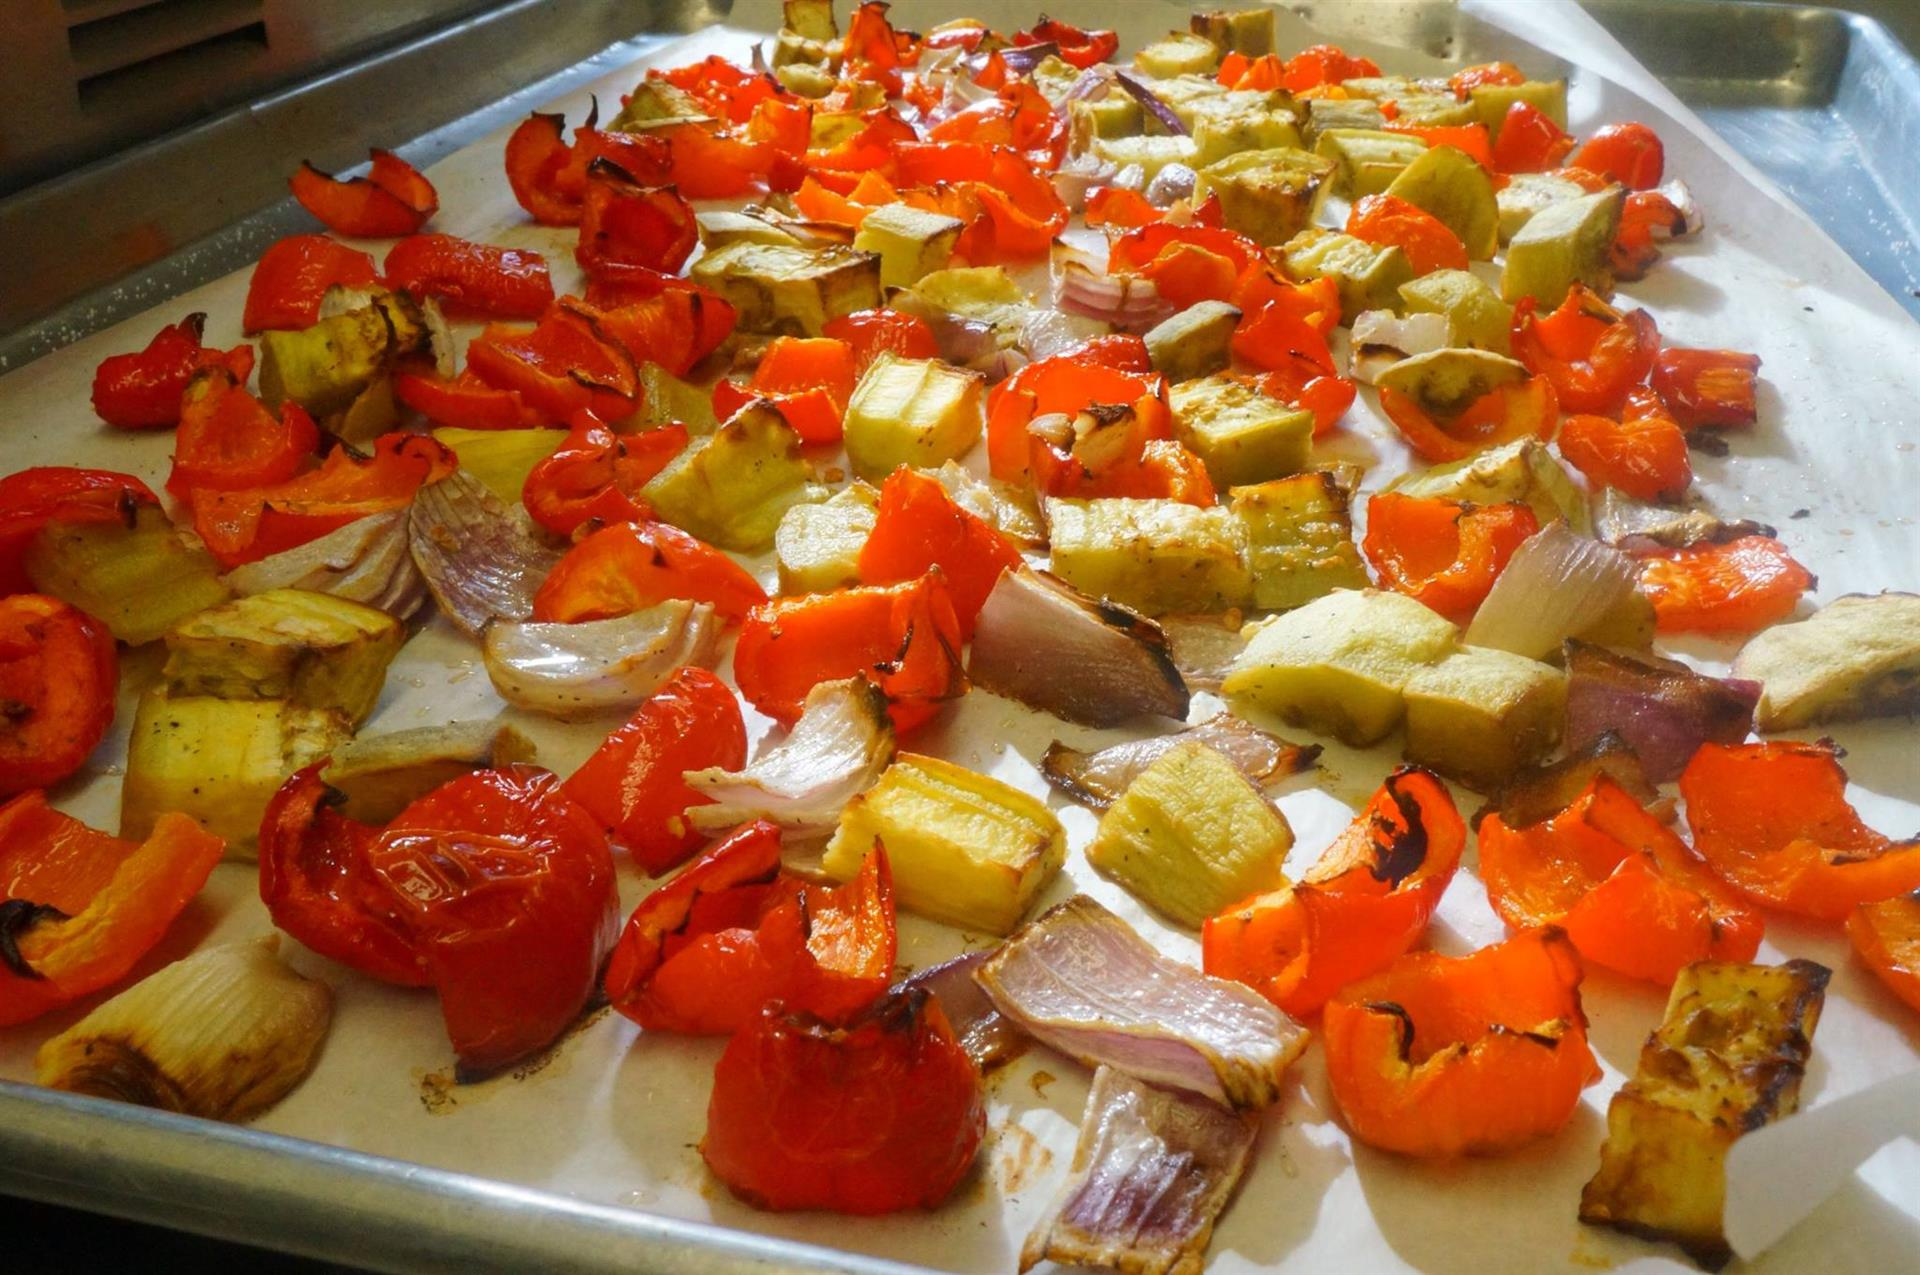 tray of onion, artichokes and bell peppers